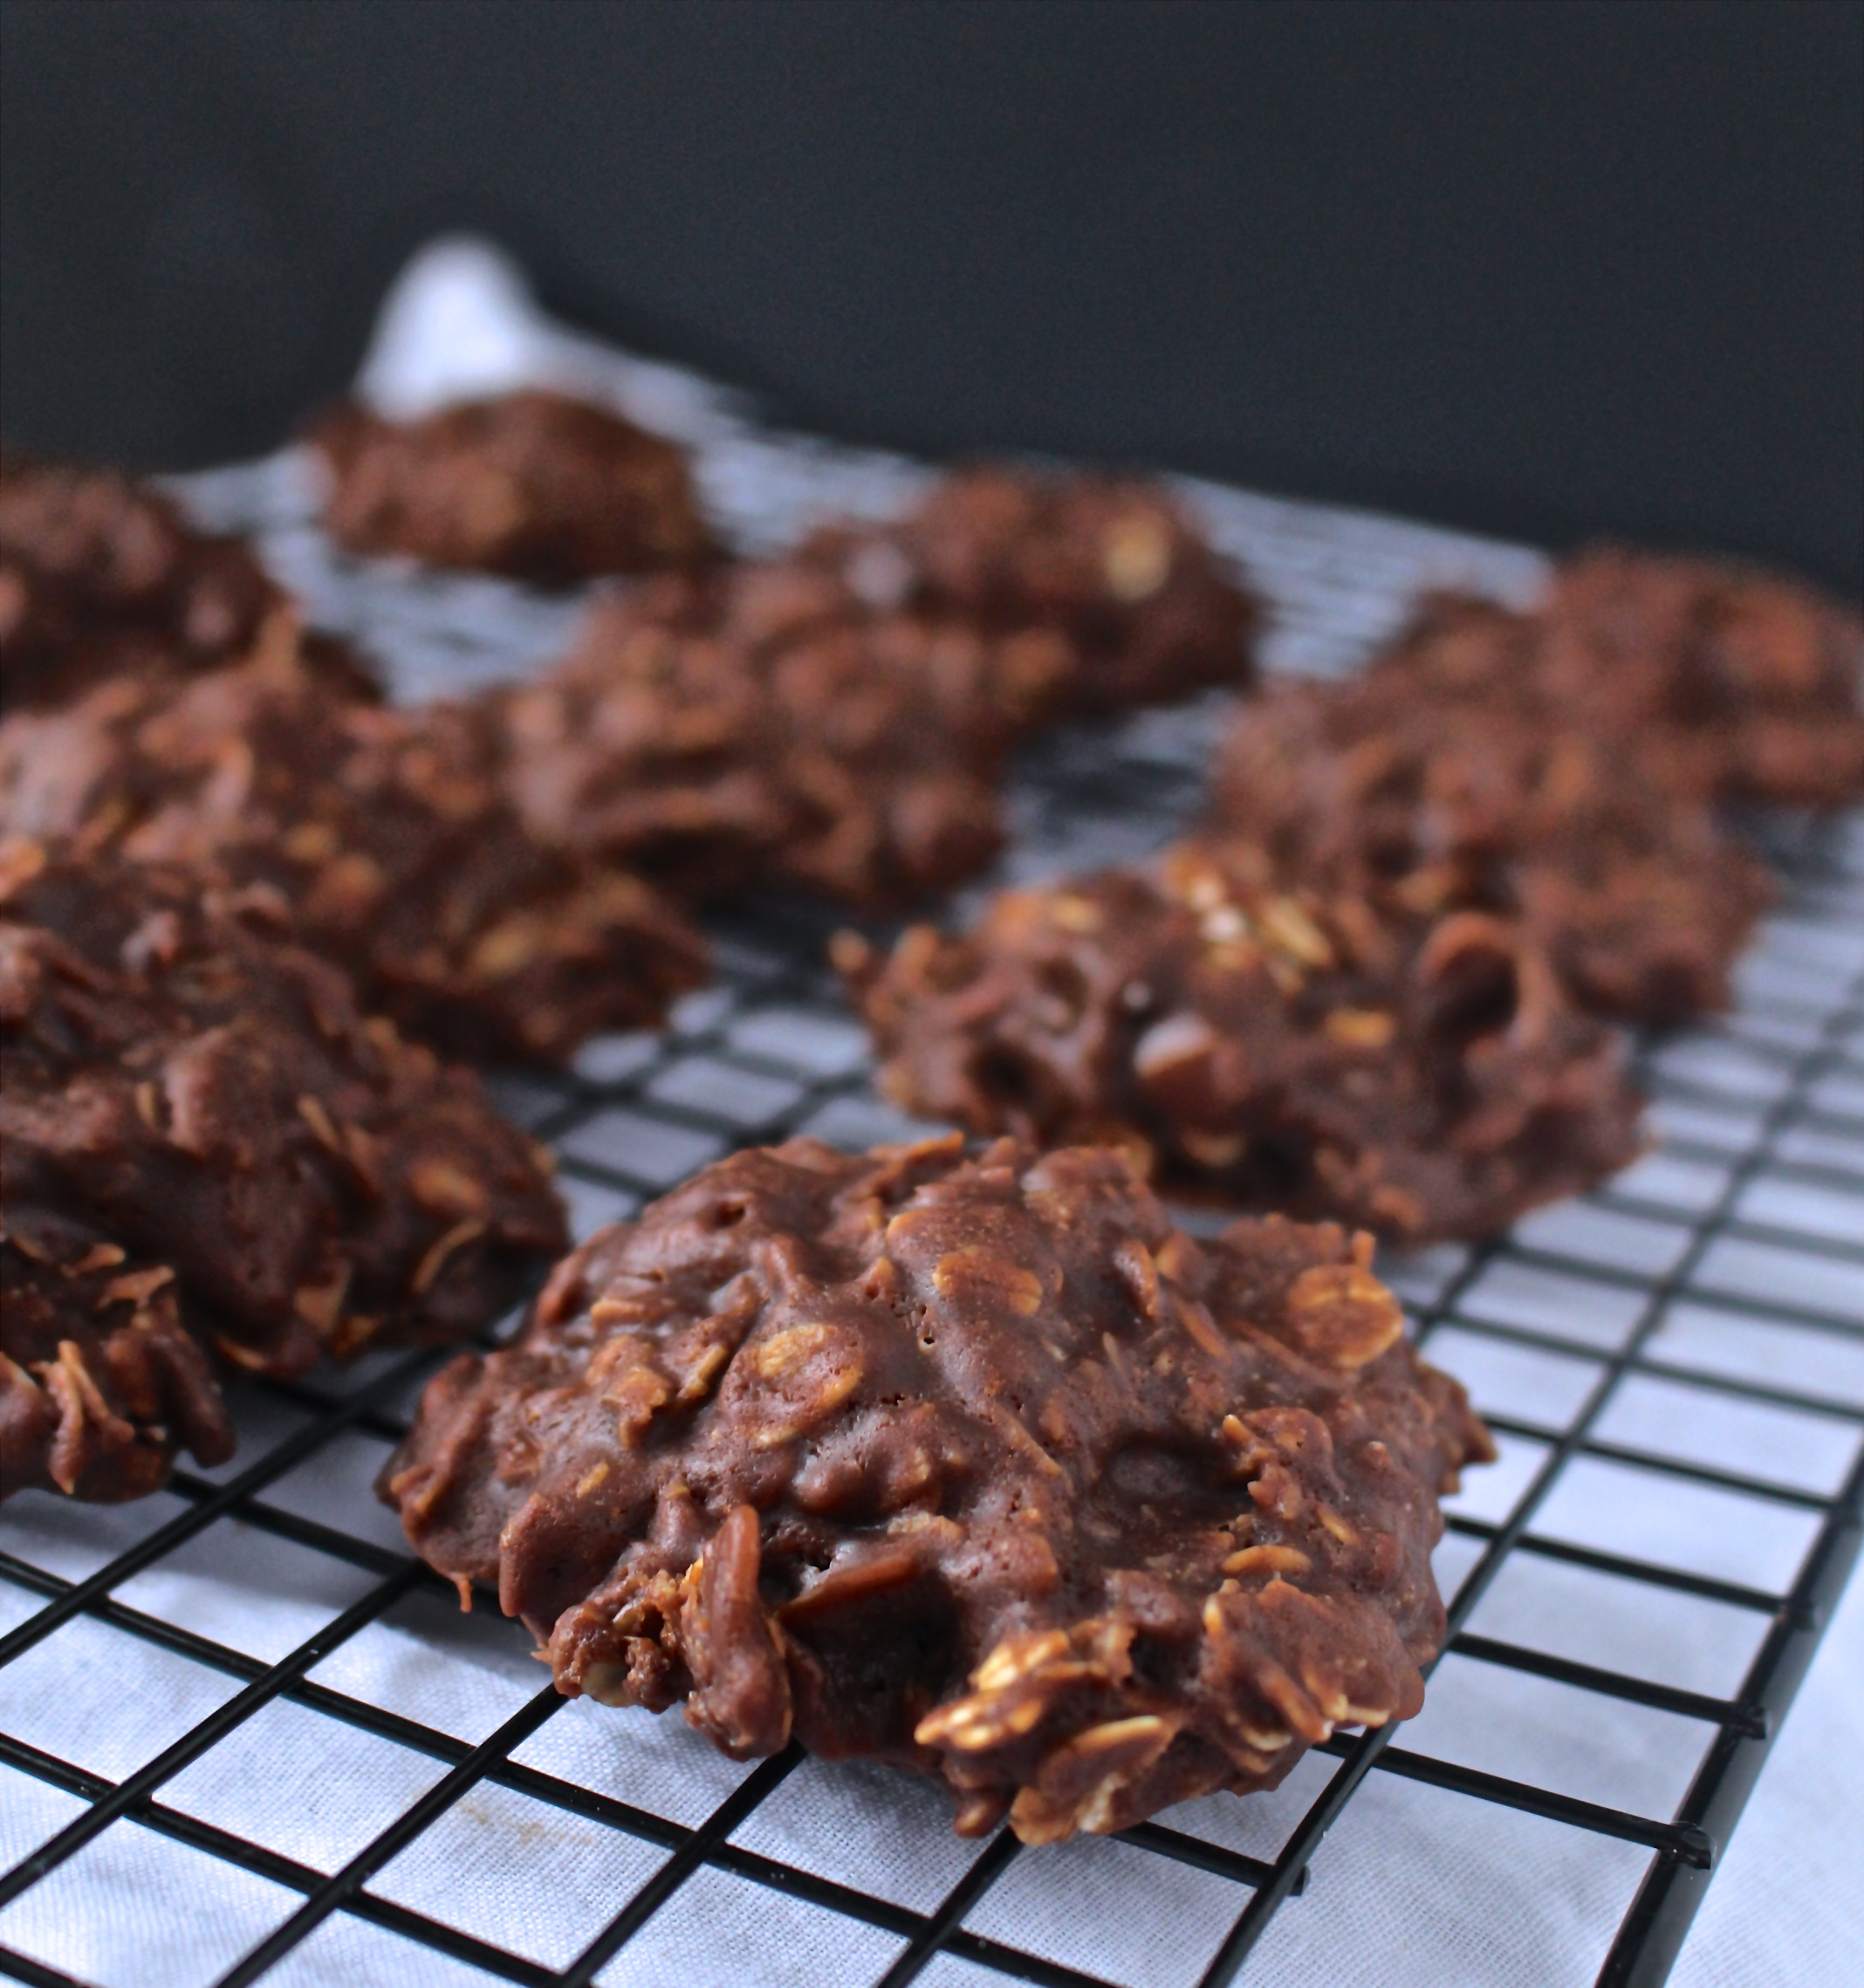 Chocolate Peanut Butter No-Bakes - Jay's Baking Me Crazy